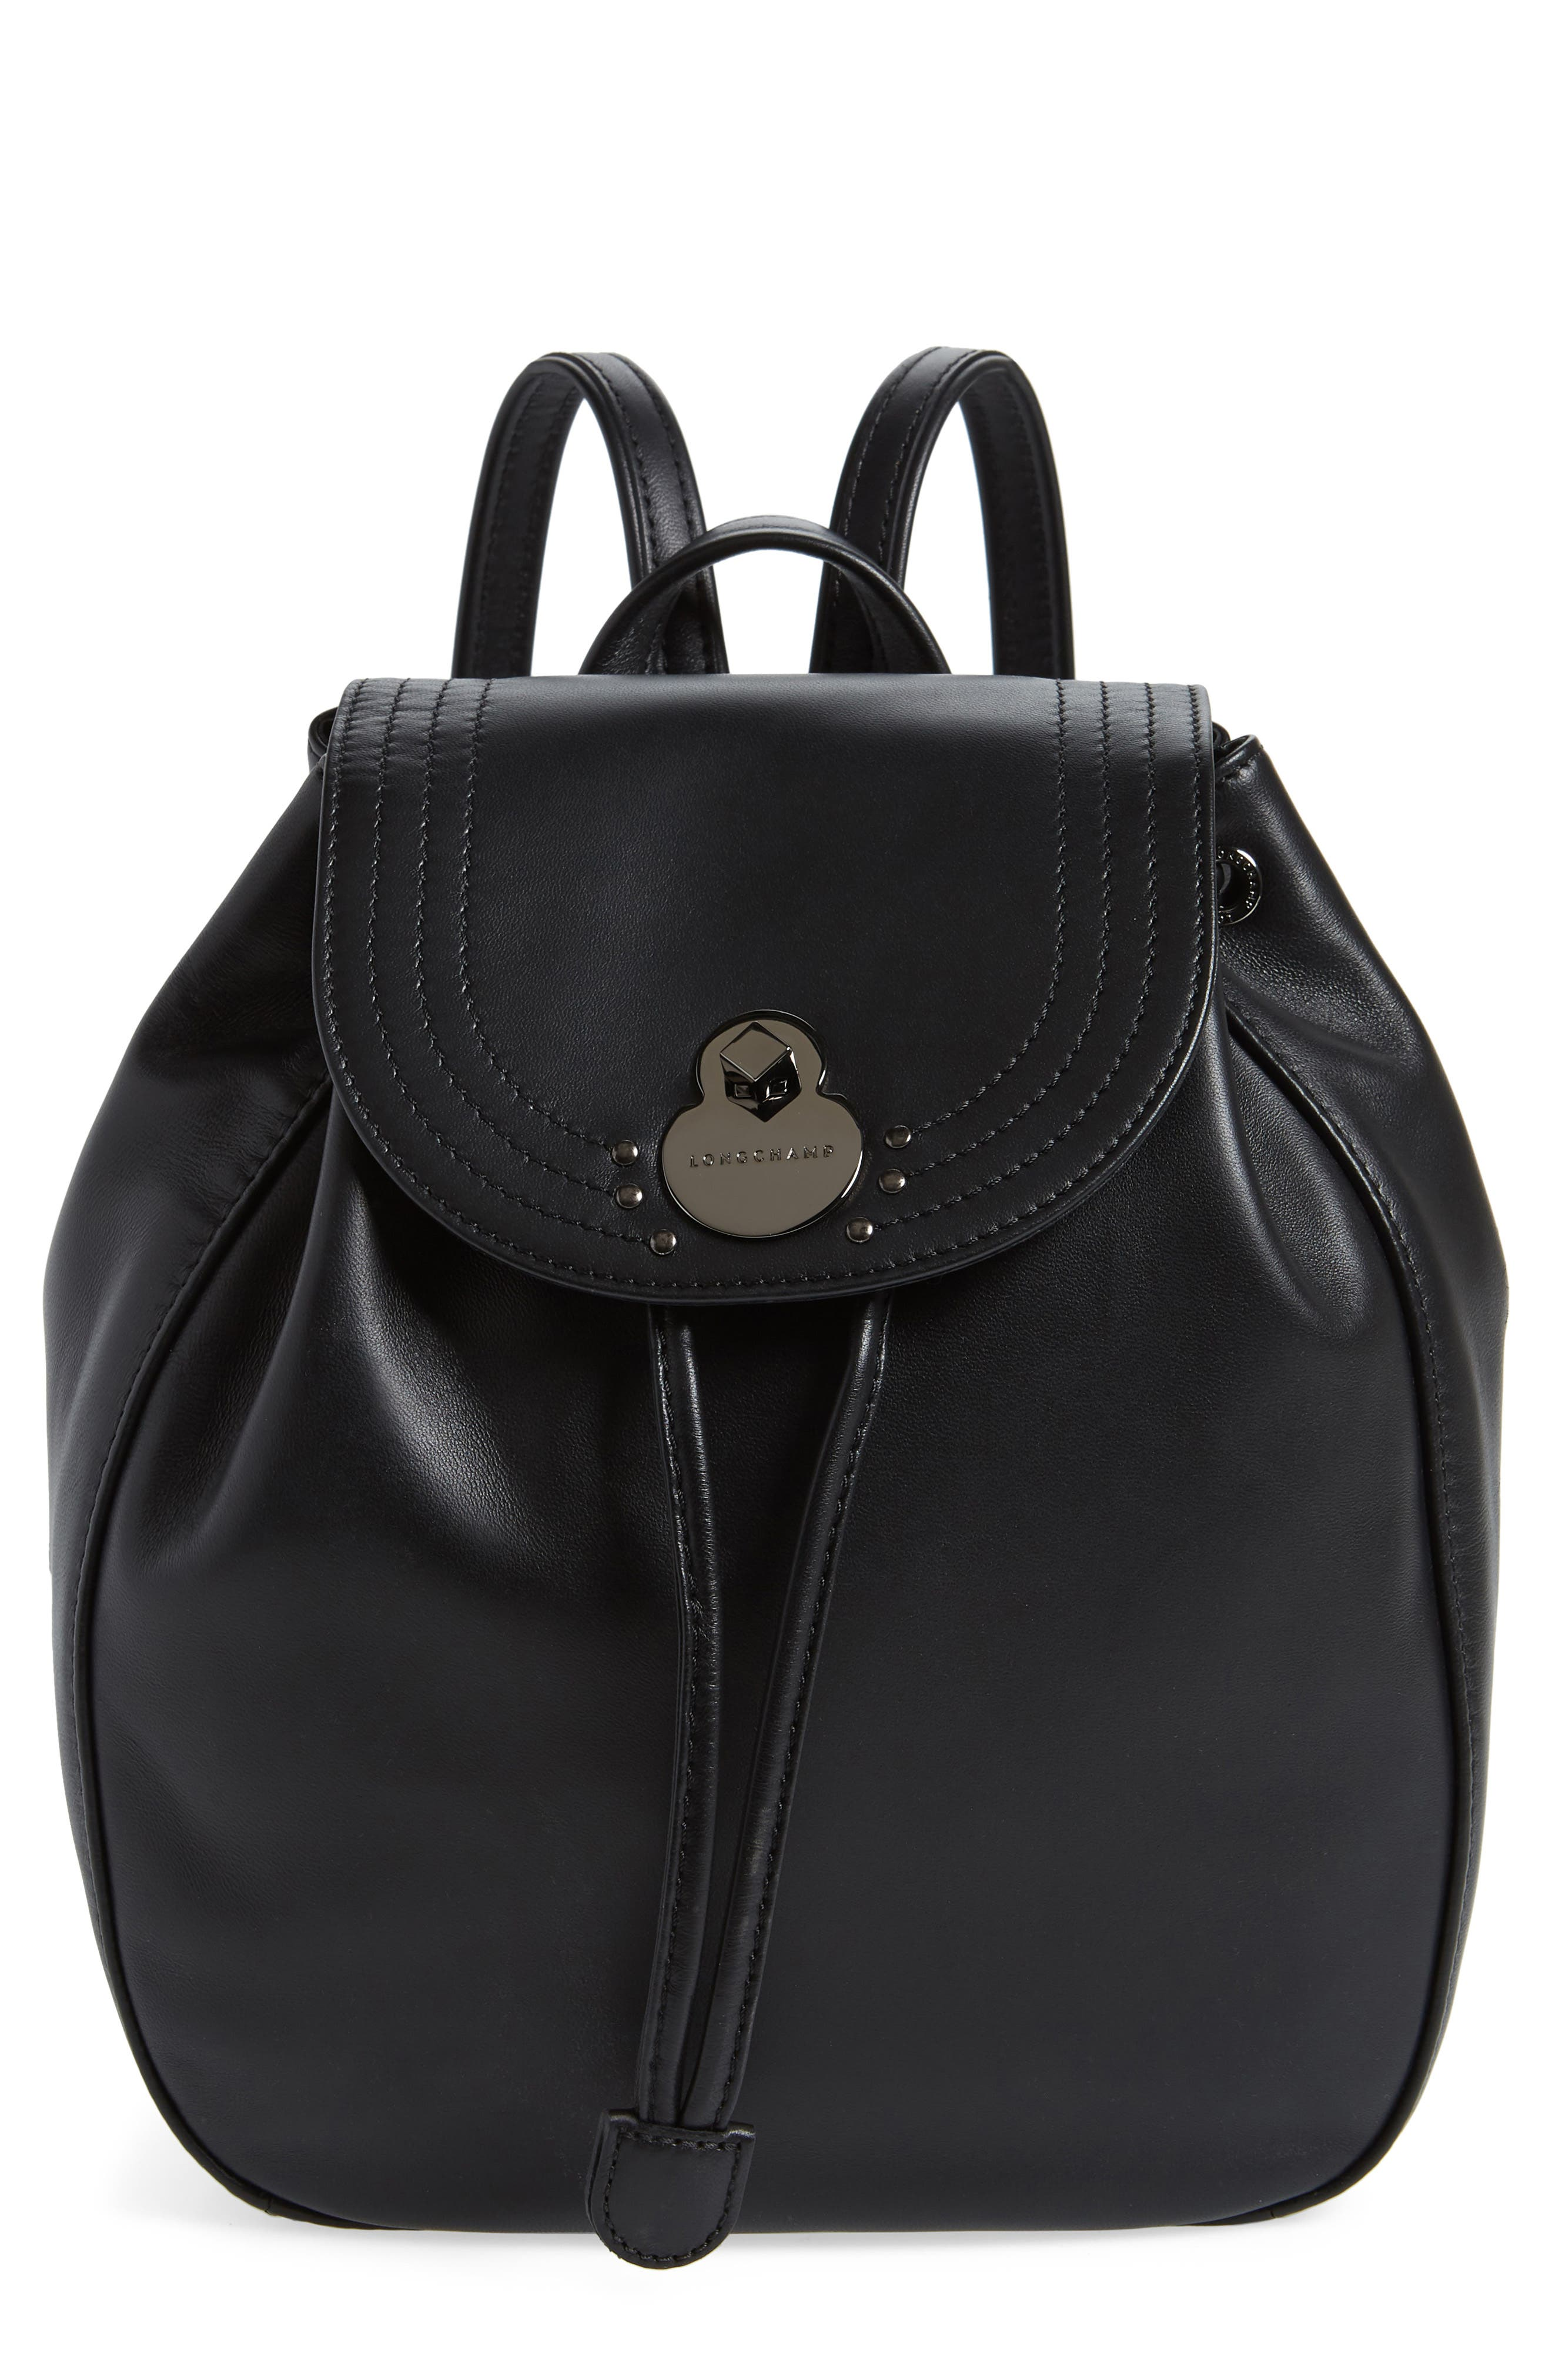 Cavalcade Leather Backpack,                             Main thumbnail 1, color,                             BLACK